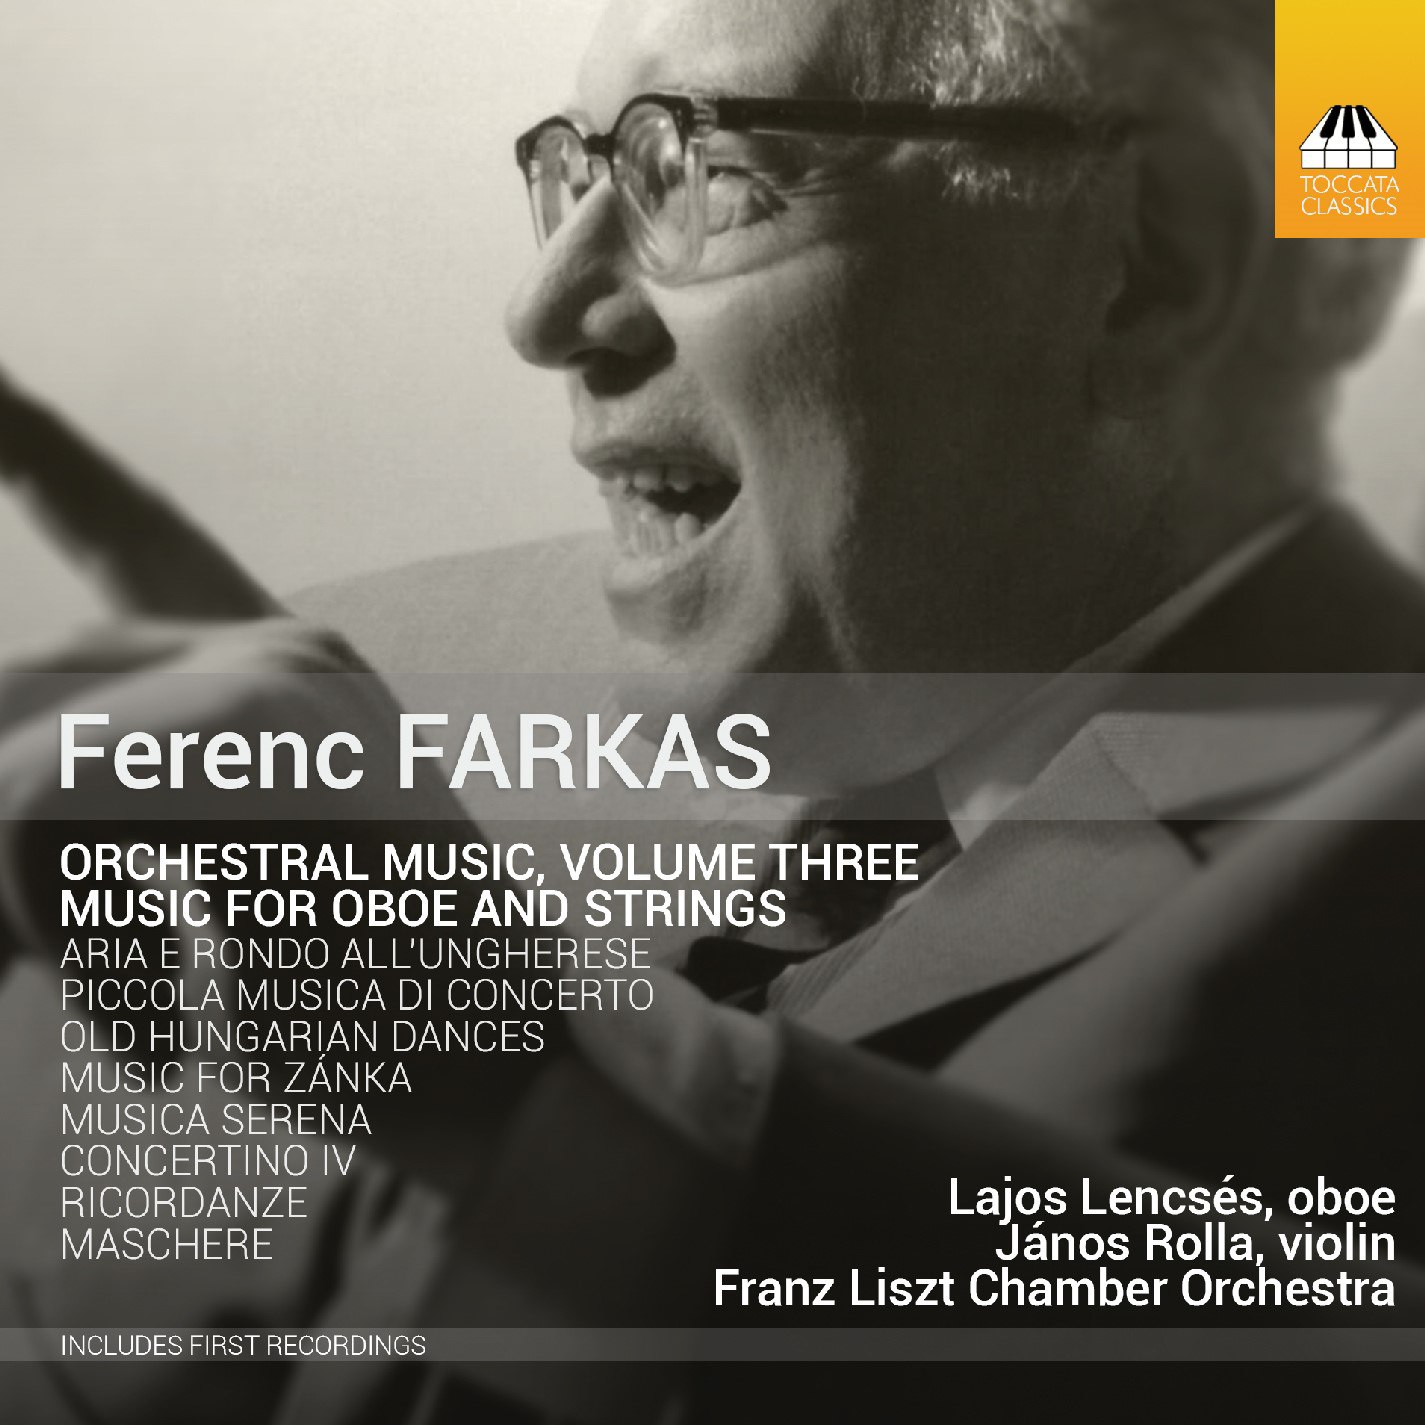 Ferenc Farkas: Orchestral Music